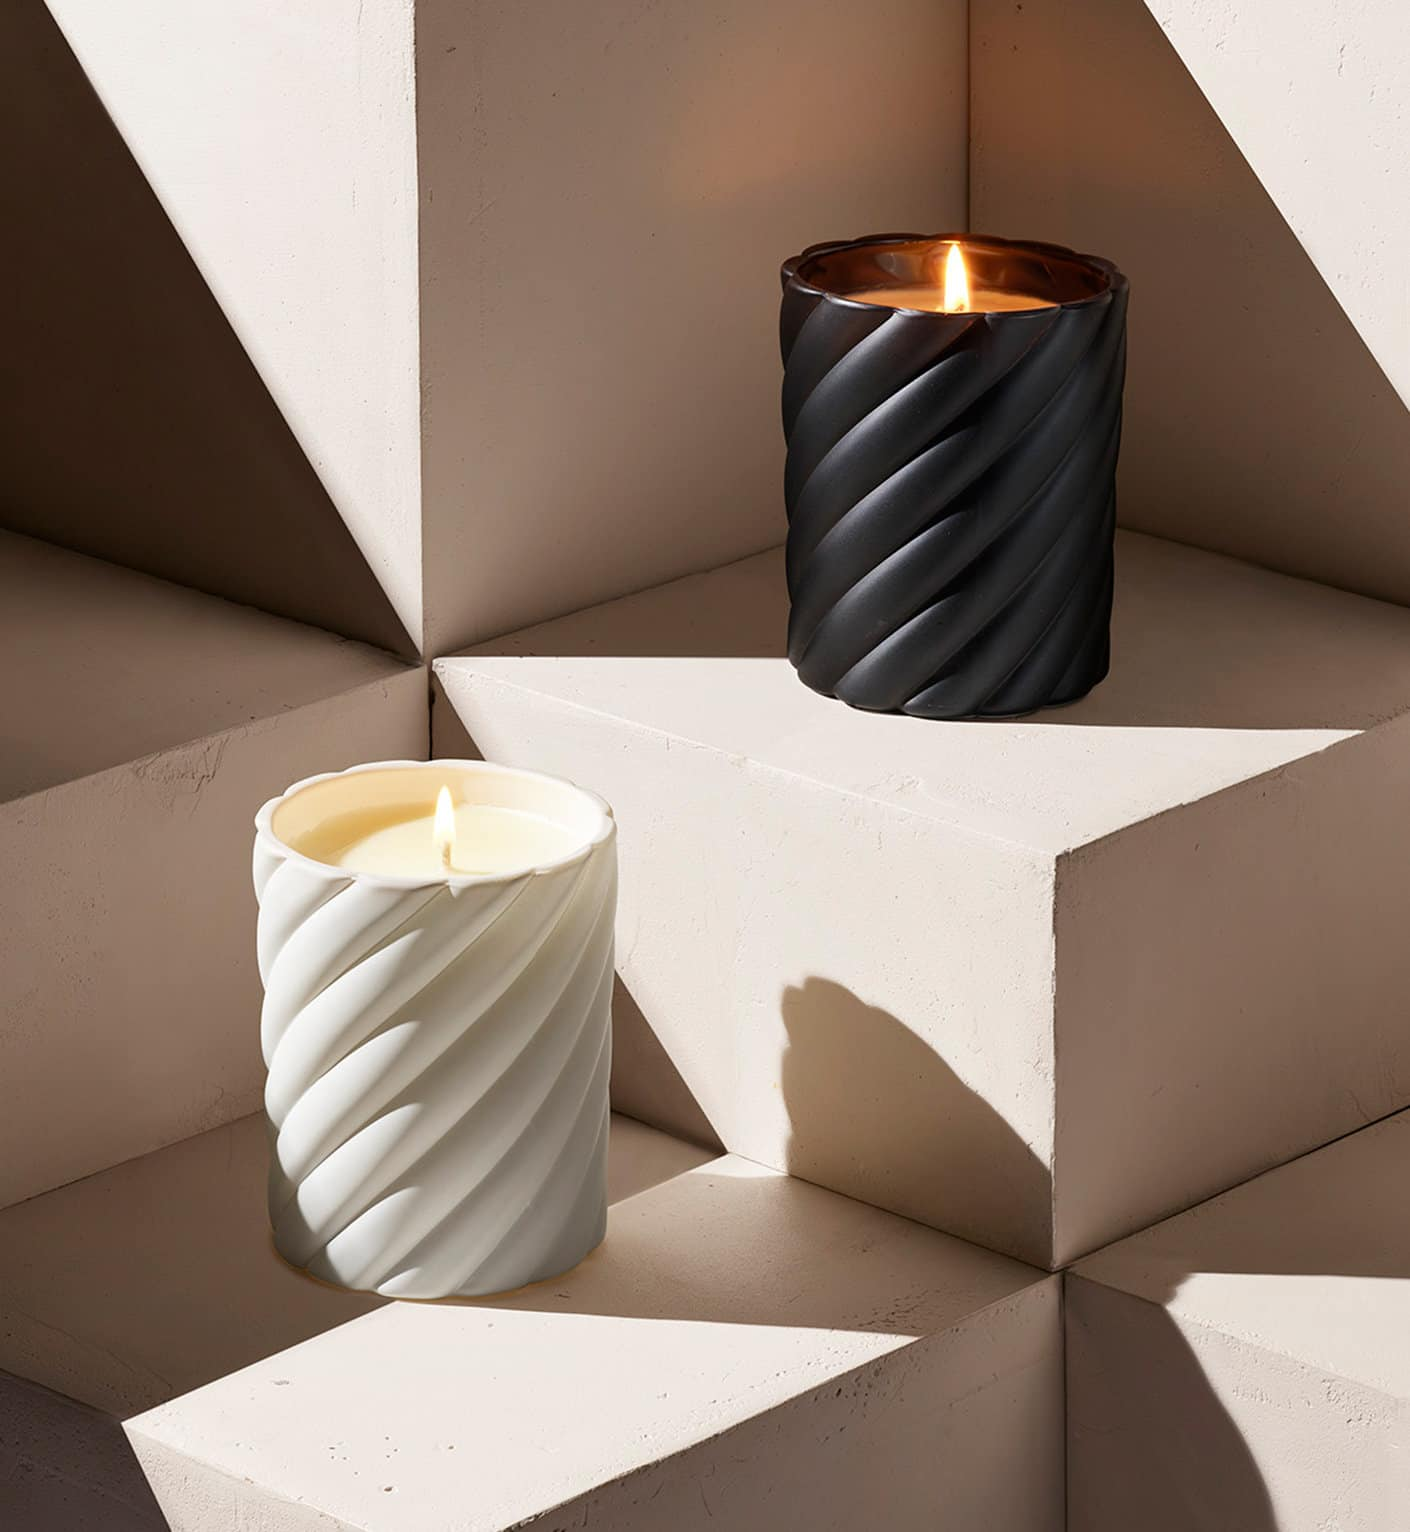 A color photograph shows two David Yurman candles one in black glass and the other in white glass.